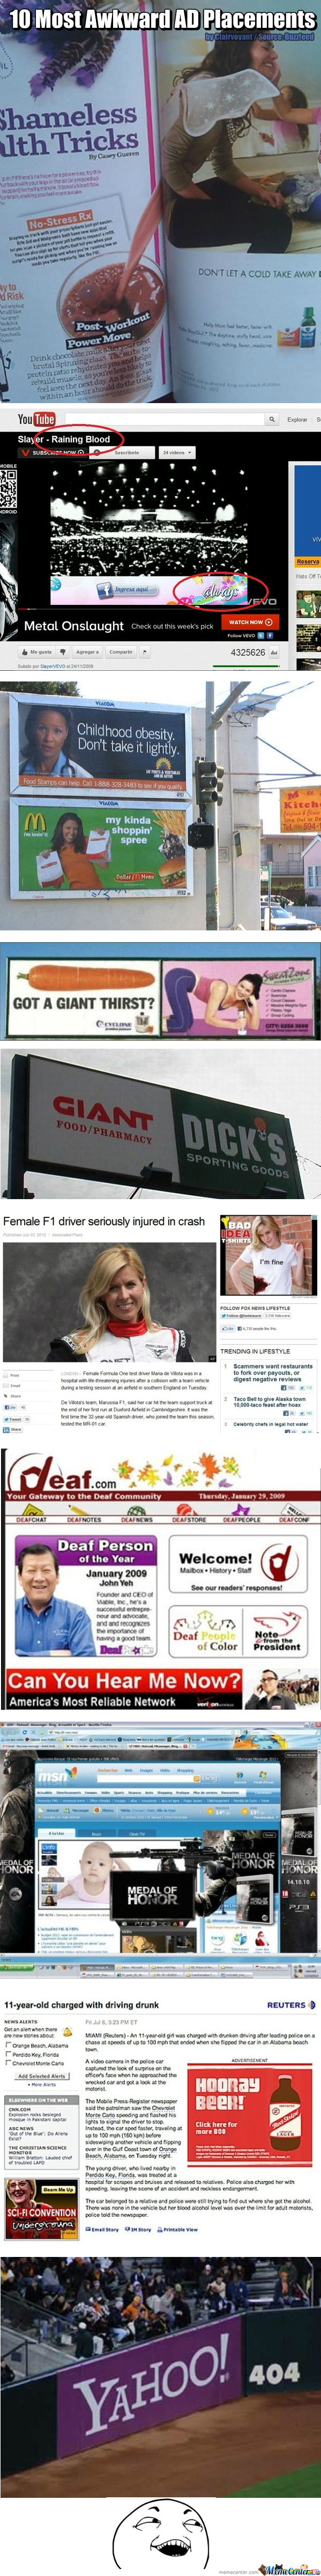 10 Most Awkward Ad Placements